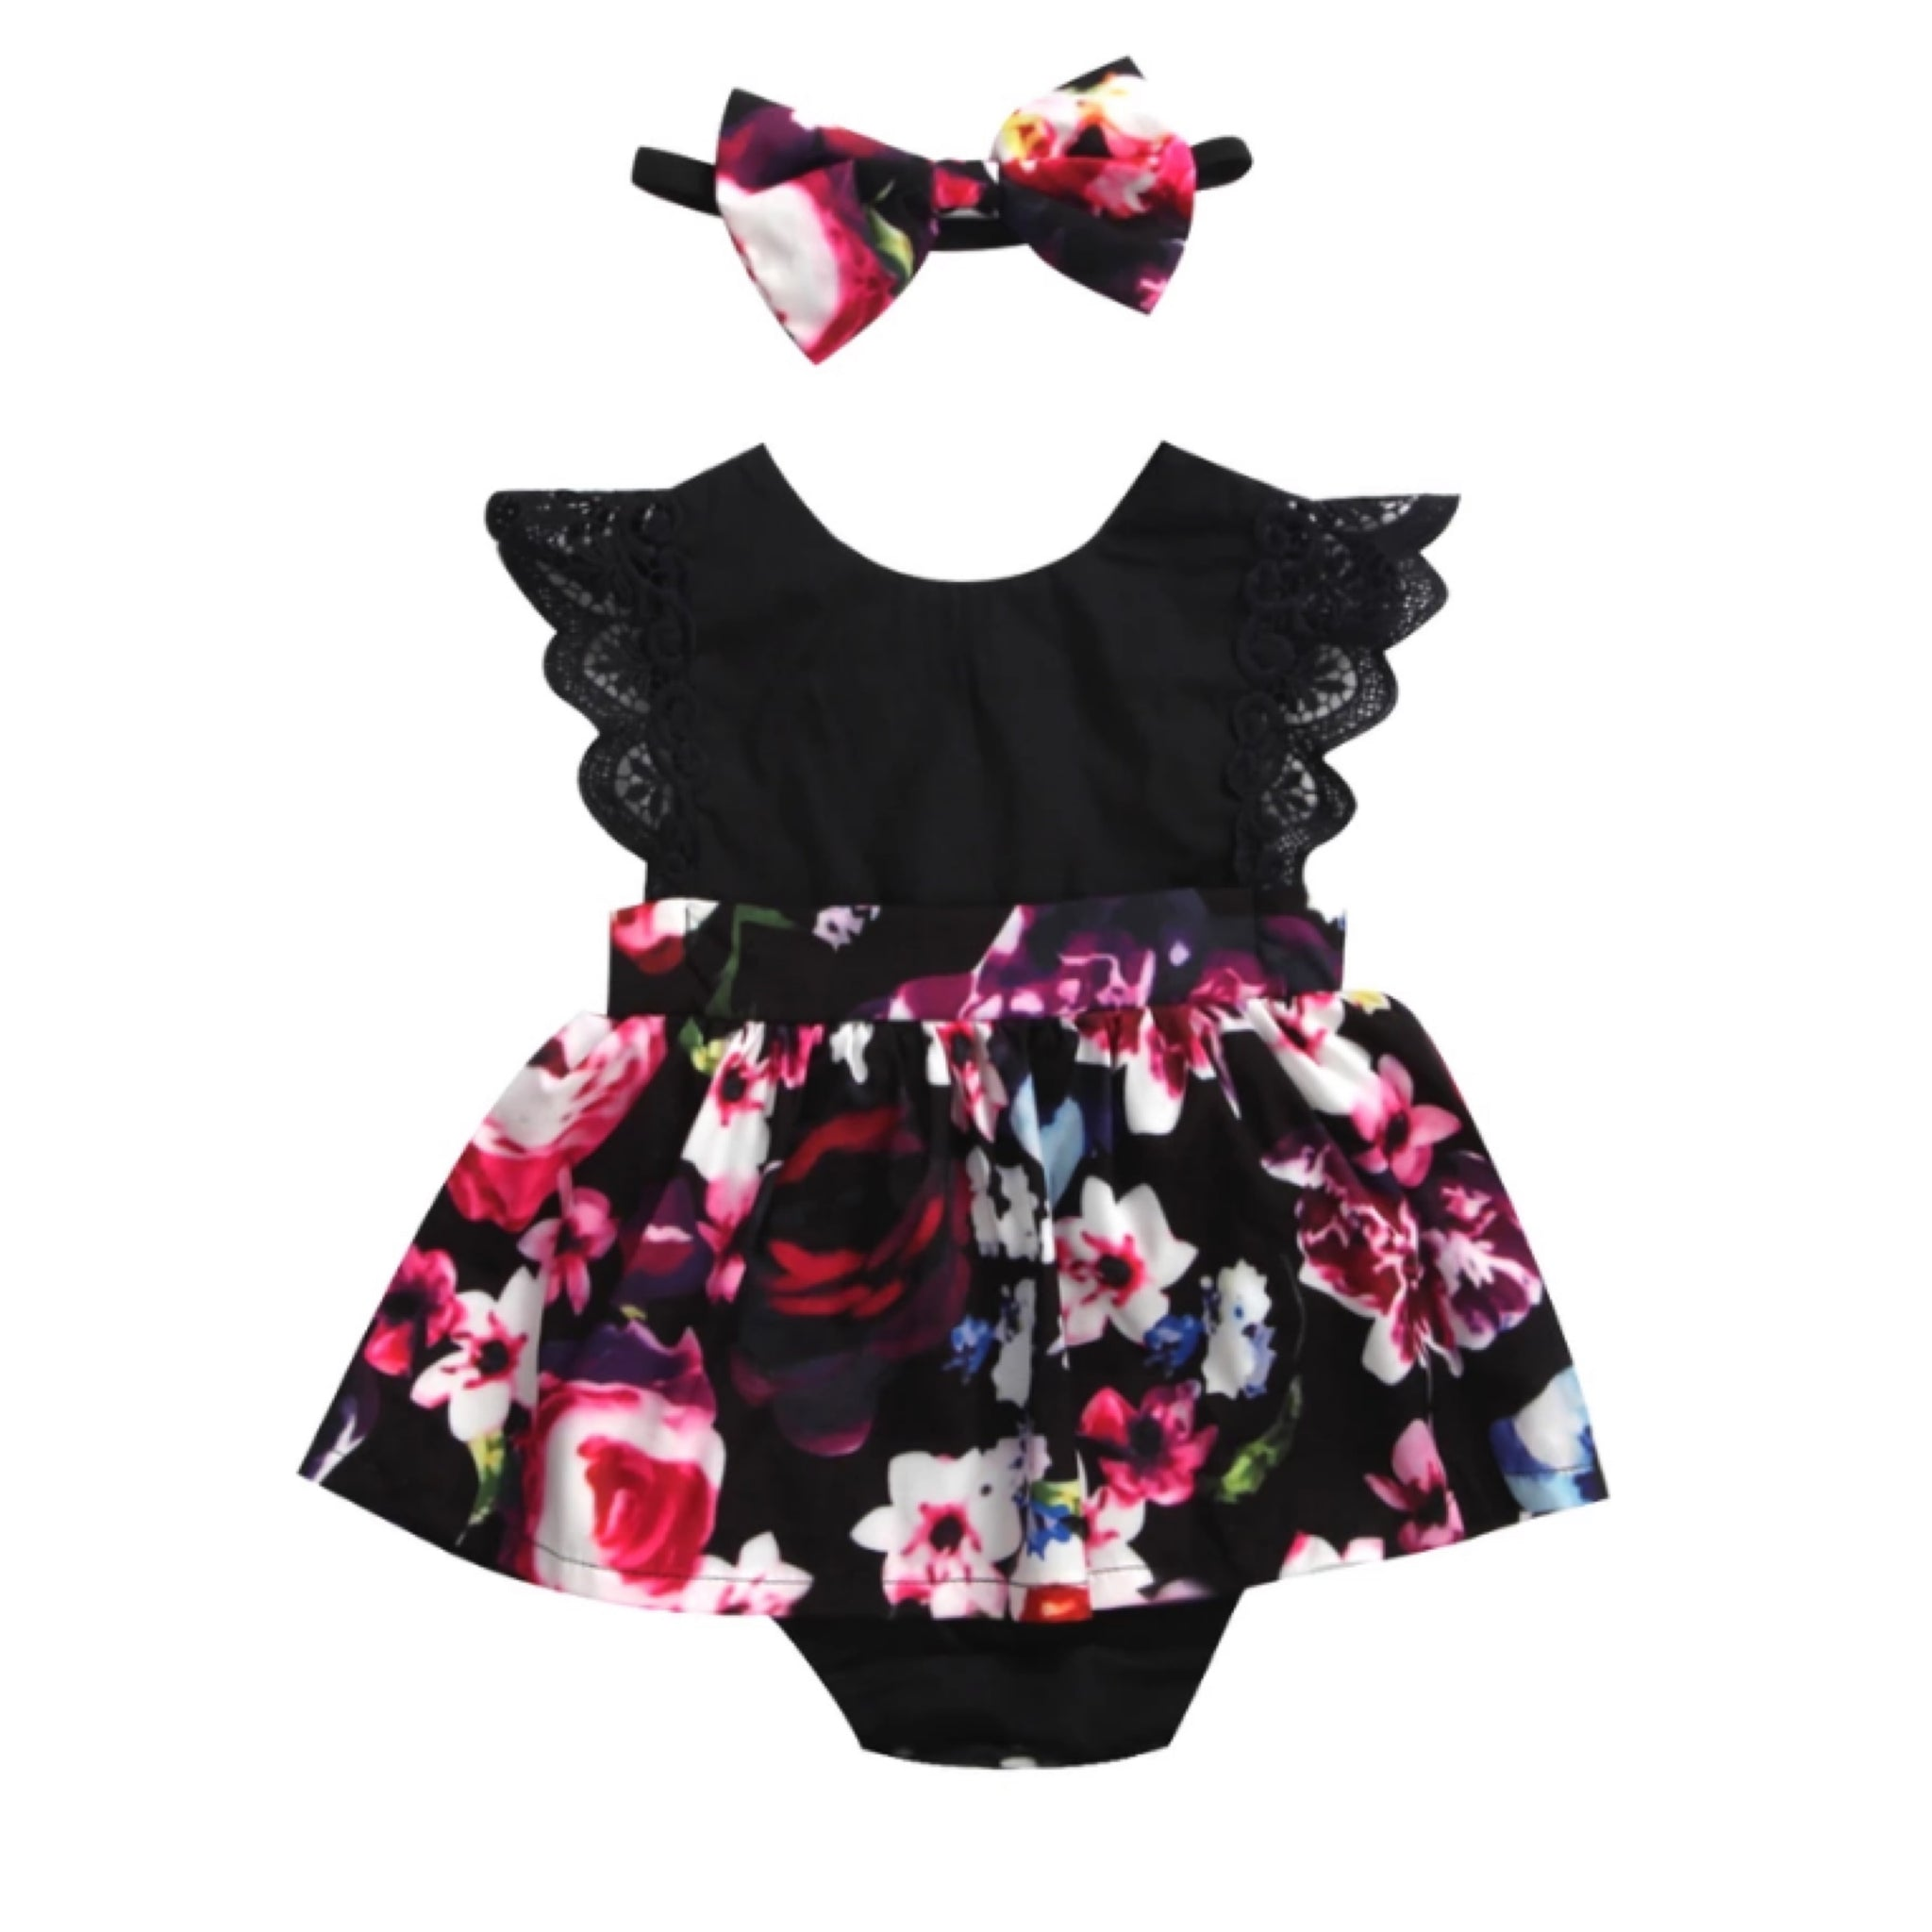 Kids-Dress-Black-Floral-Set